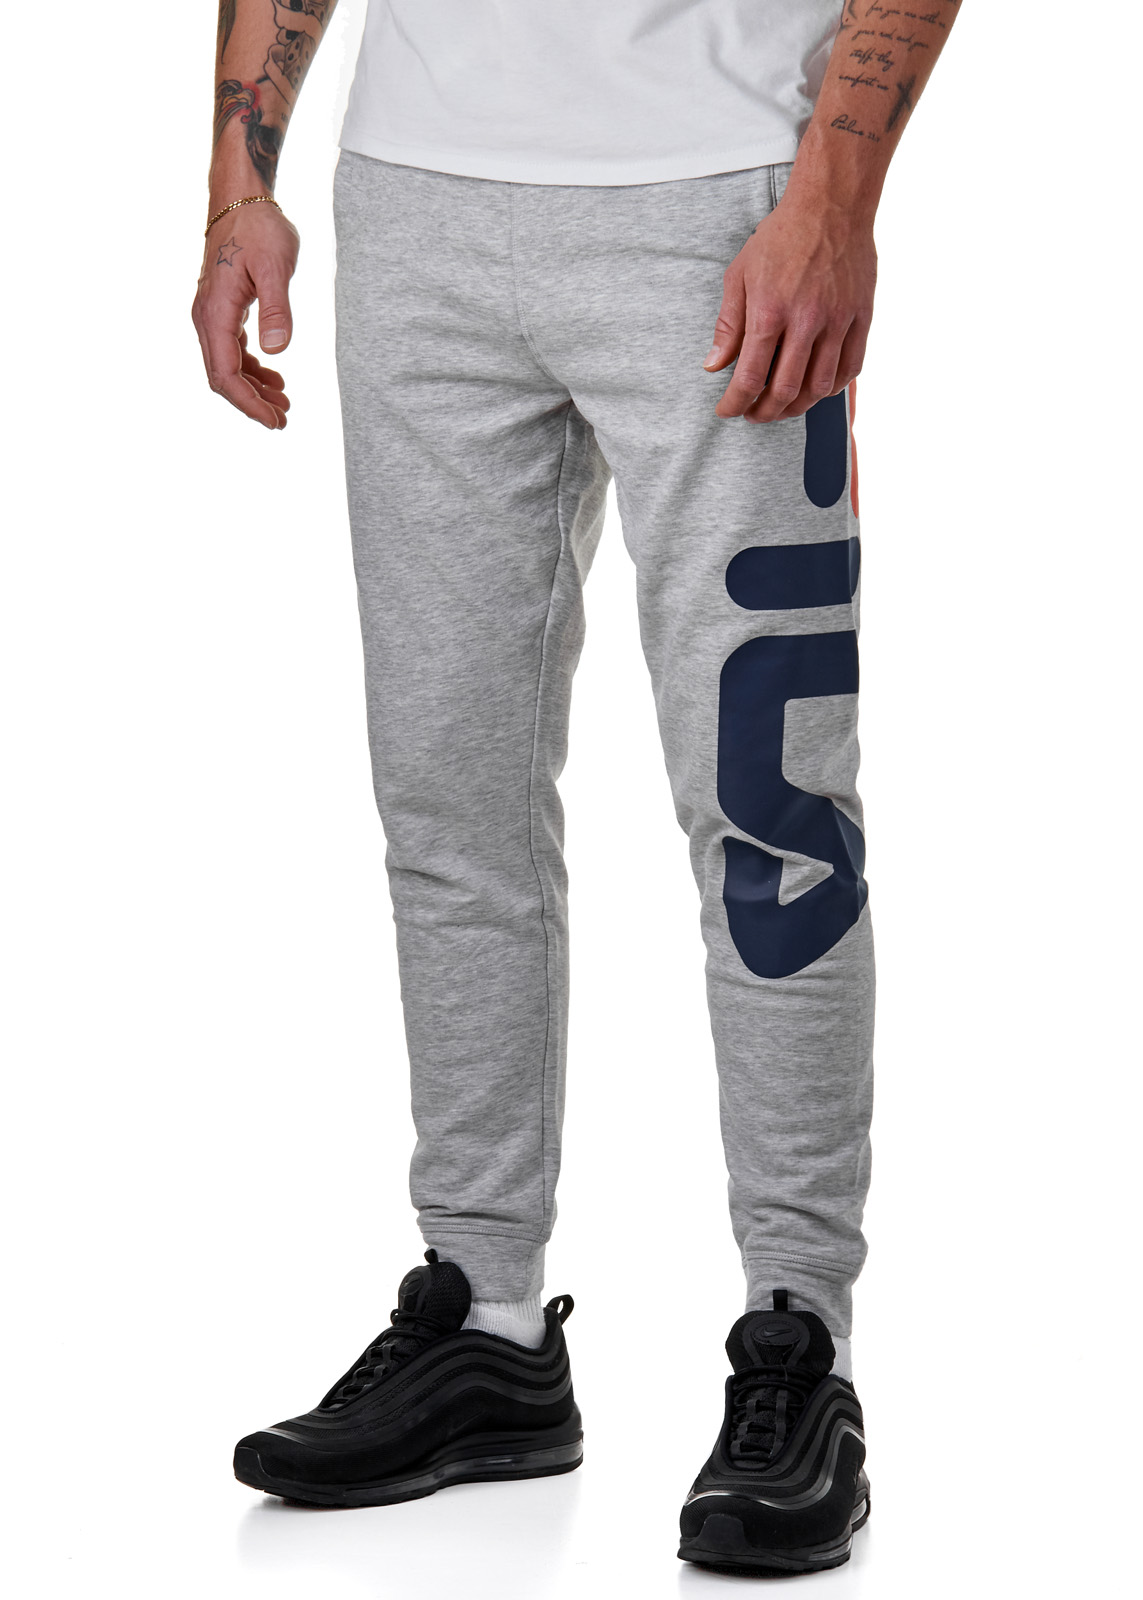 681275 Classic Jogging Pants Clothing Jeans Hosen Jogginghosen